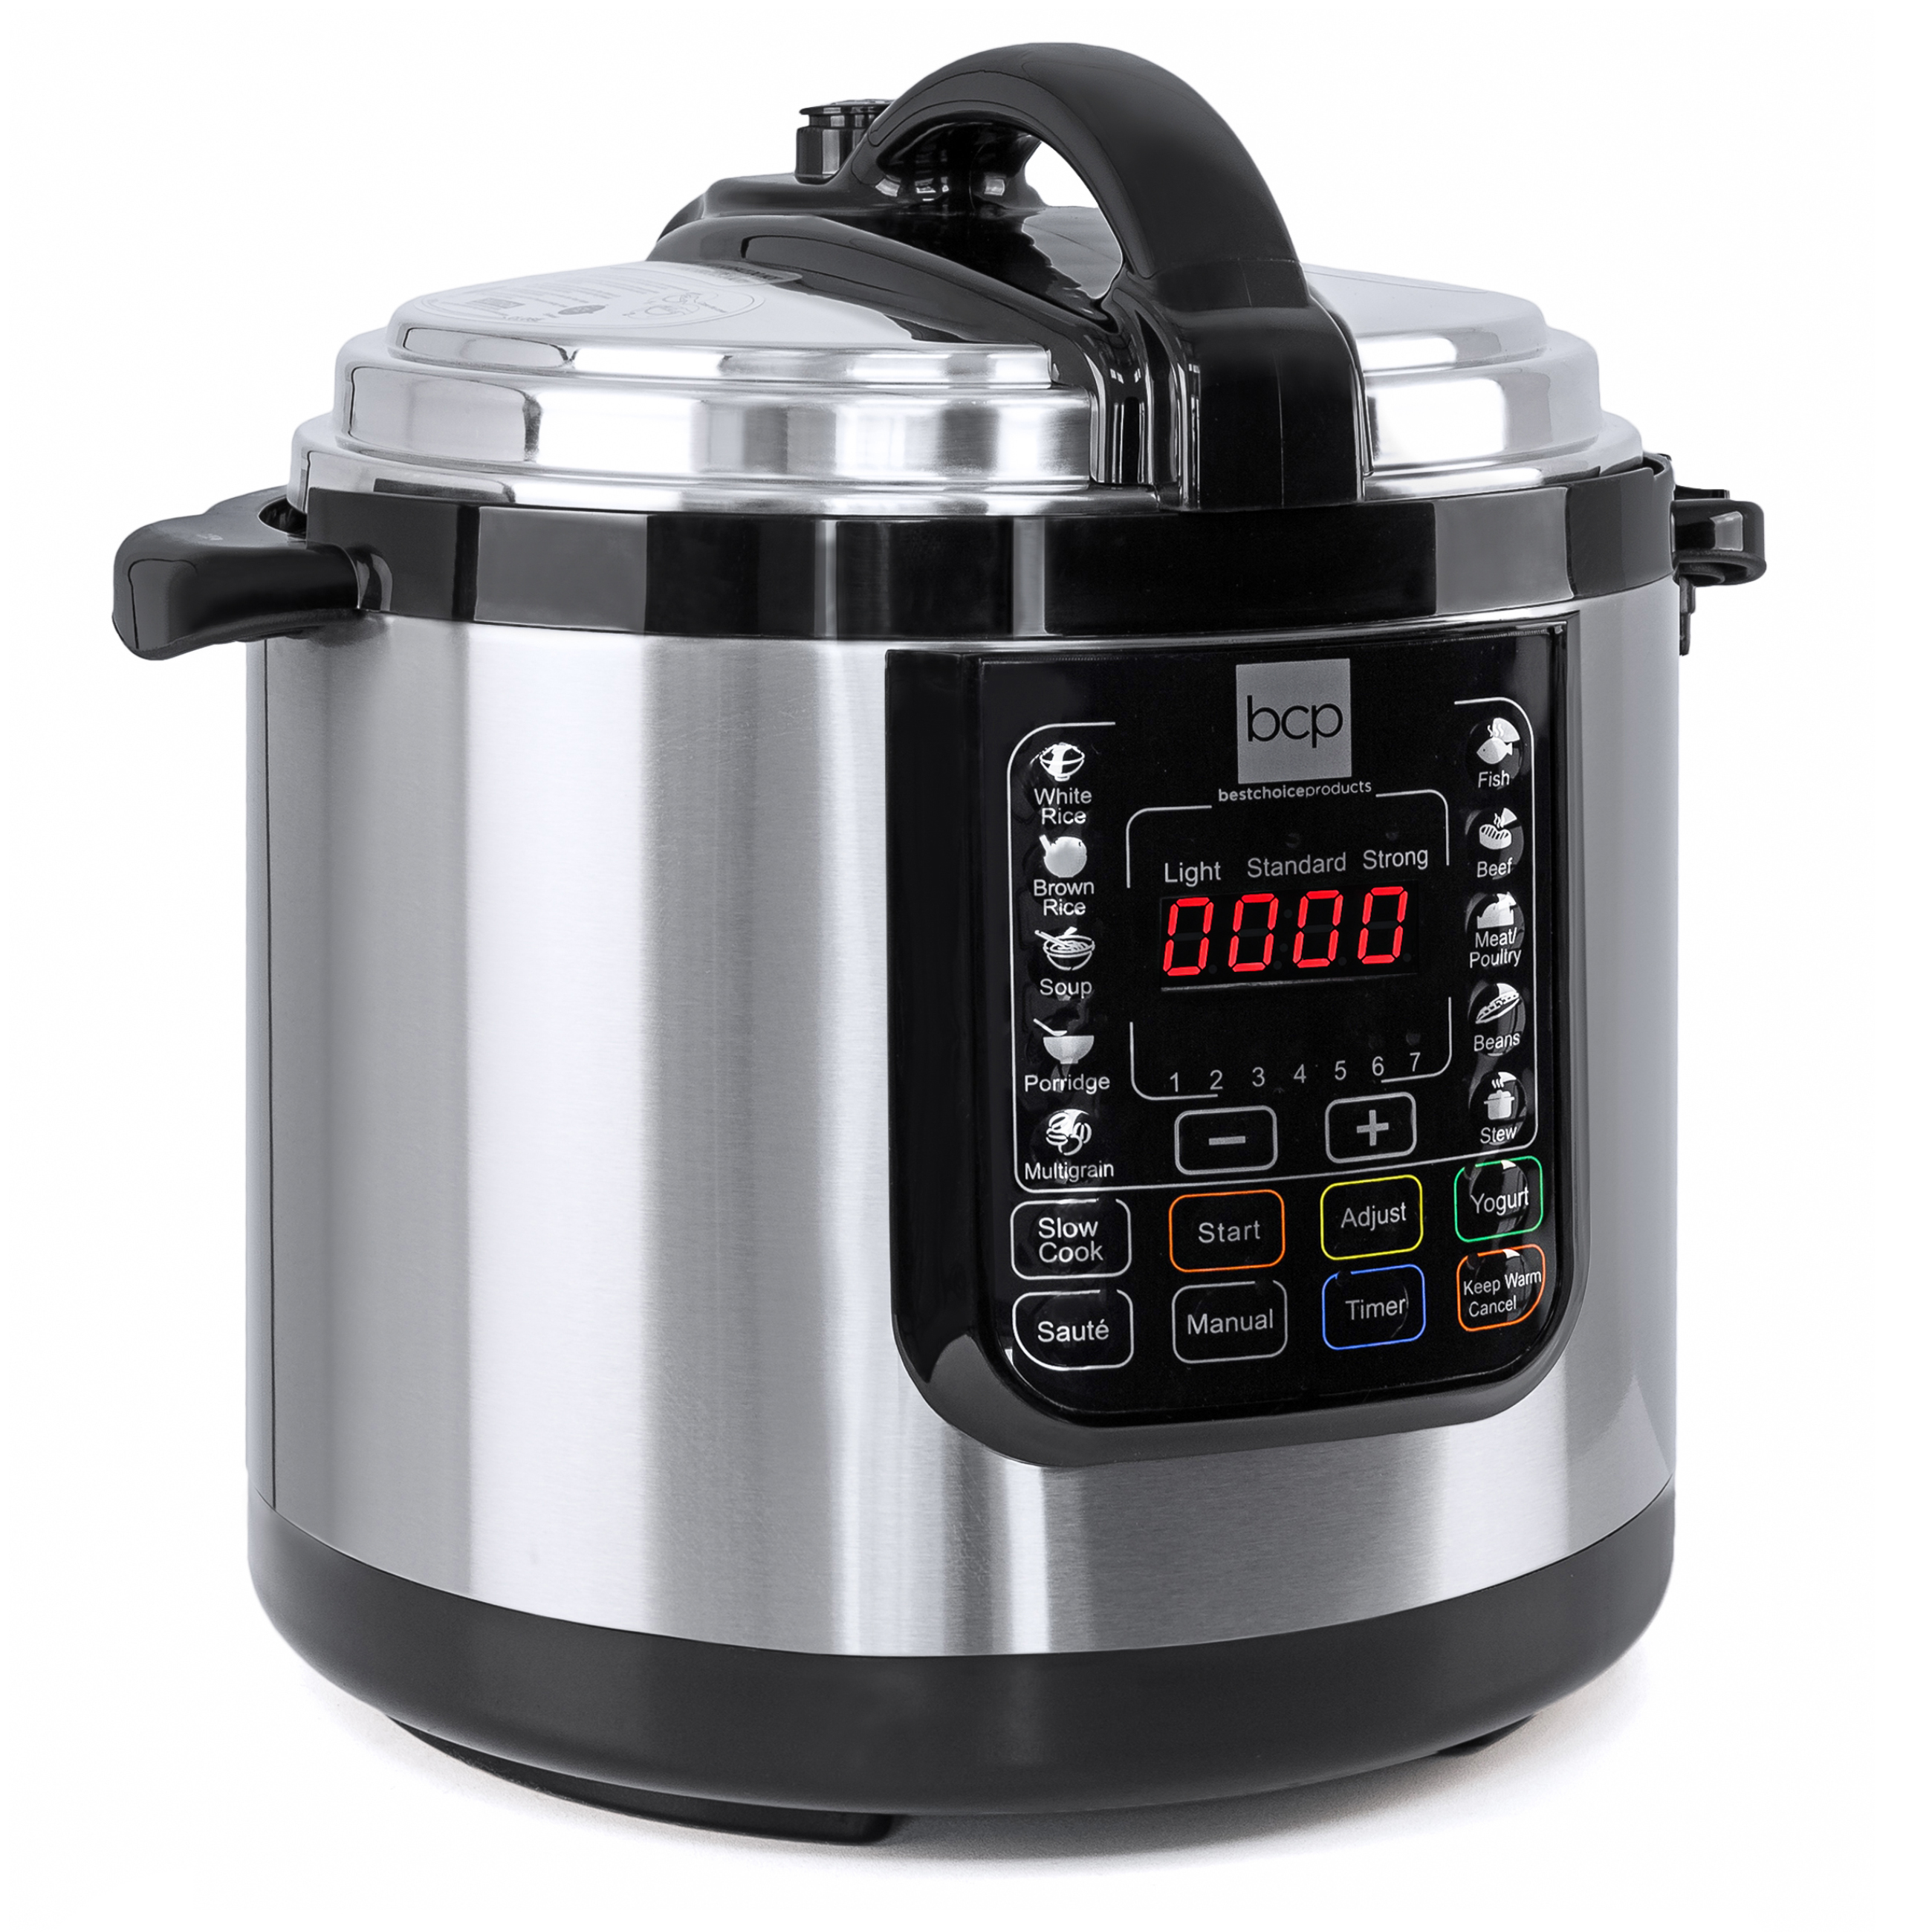 6 liter 1000 watt stainless steel electric pressure cooker for Electric pressure cooker fish recipes